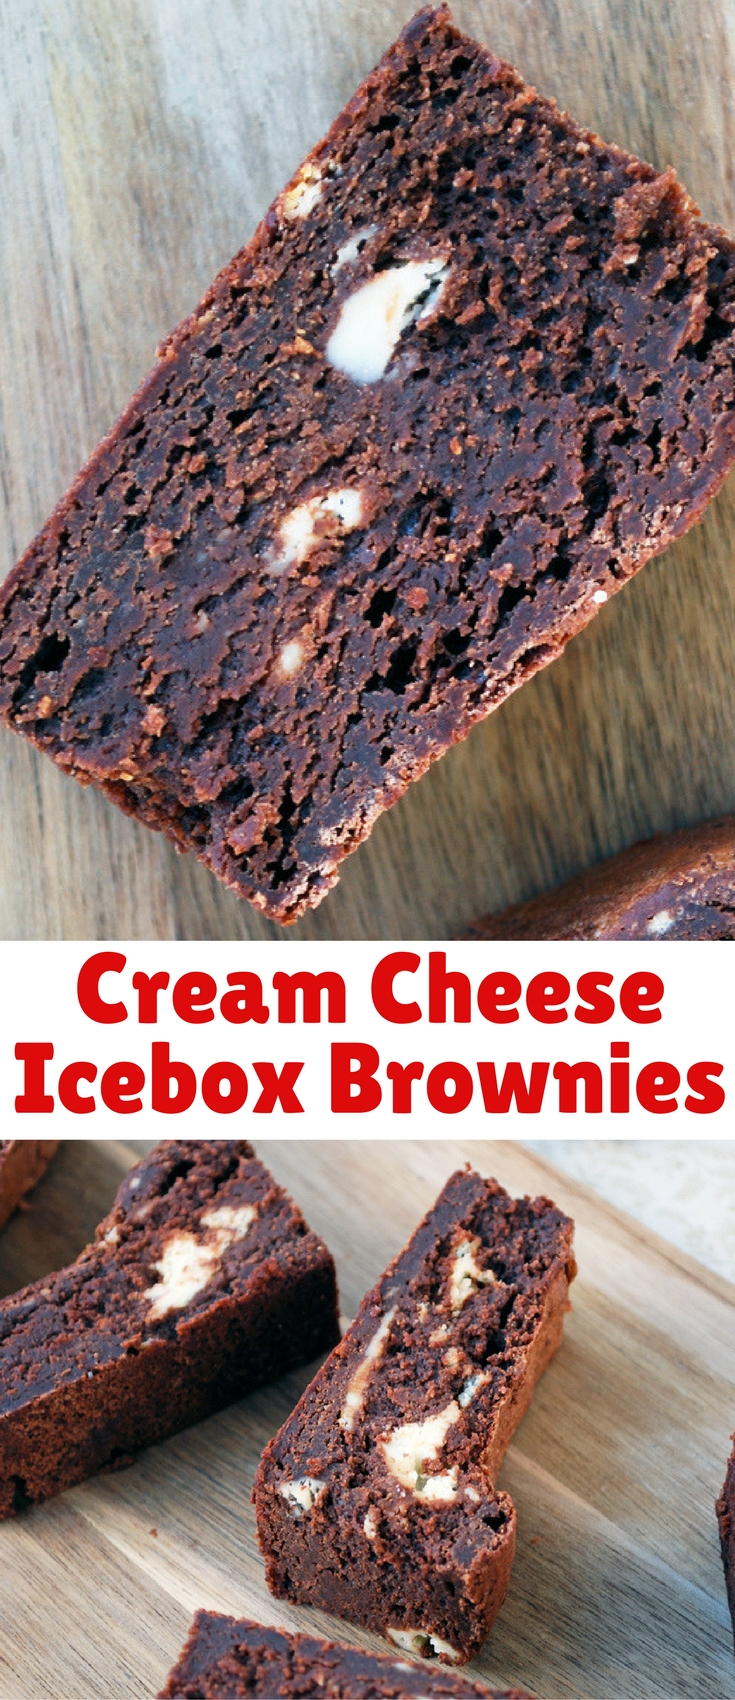 Deeply chocolate brownies, taken to the next level with cream cheese and a trip to the freezer!